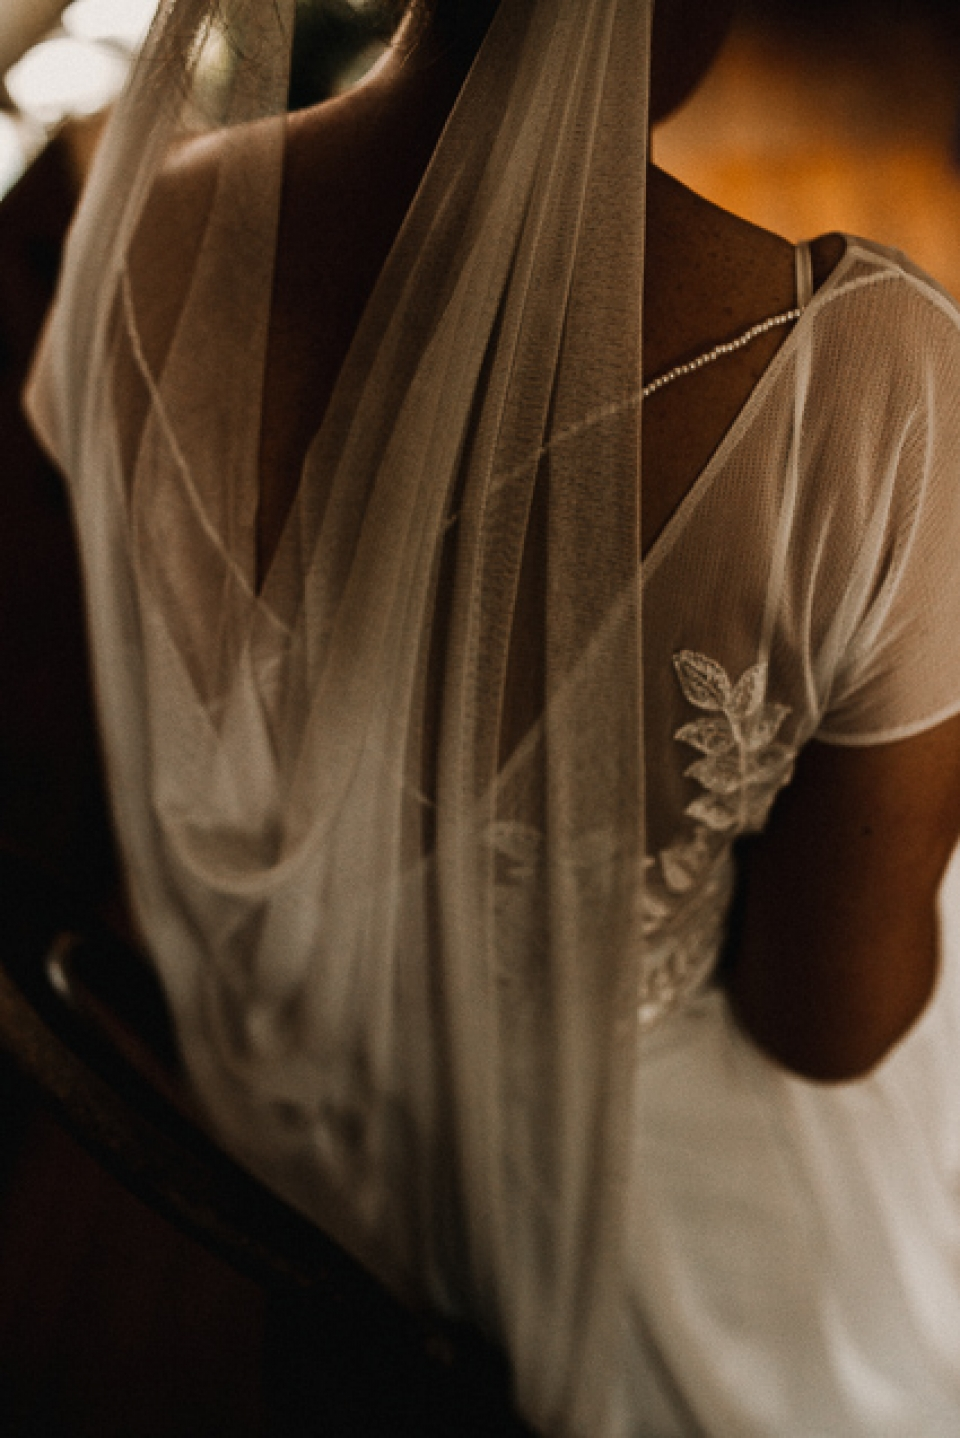 details of the back of brides dress